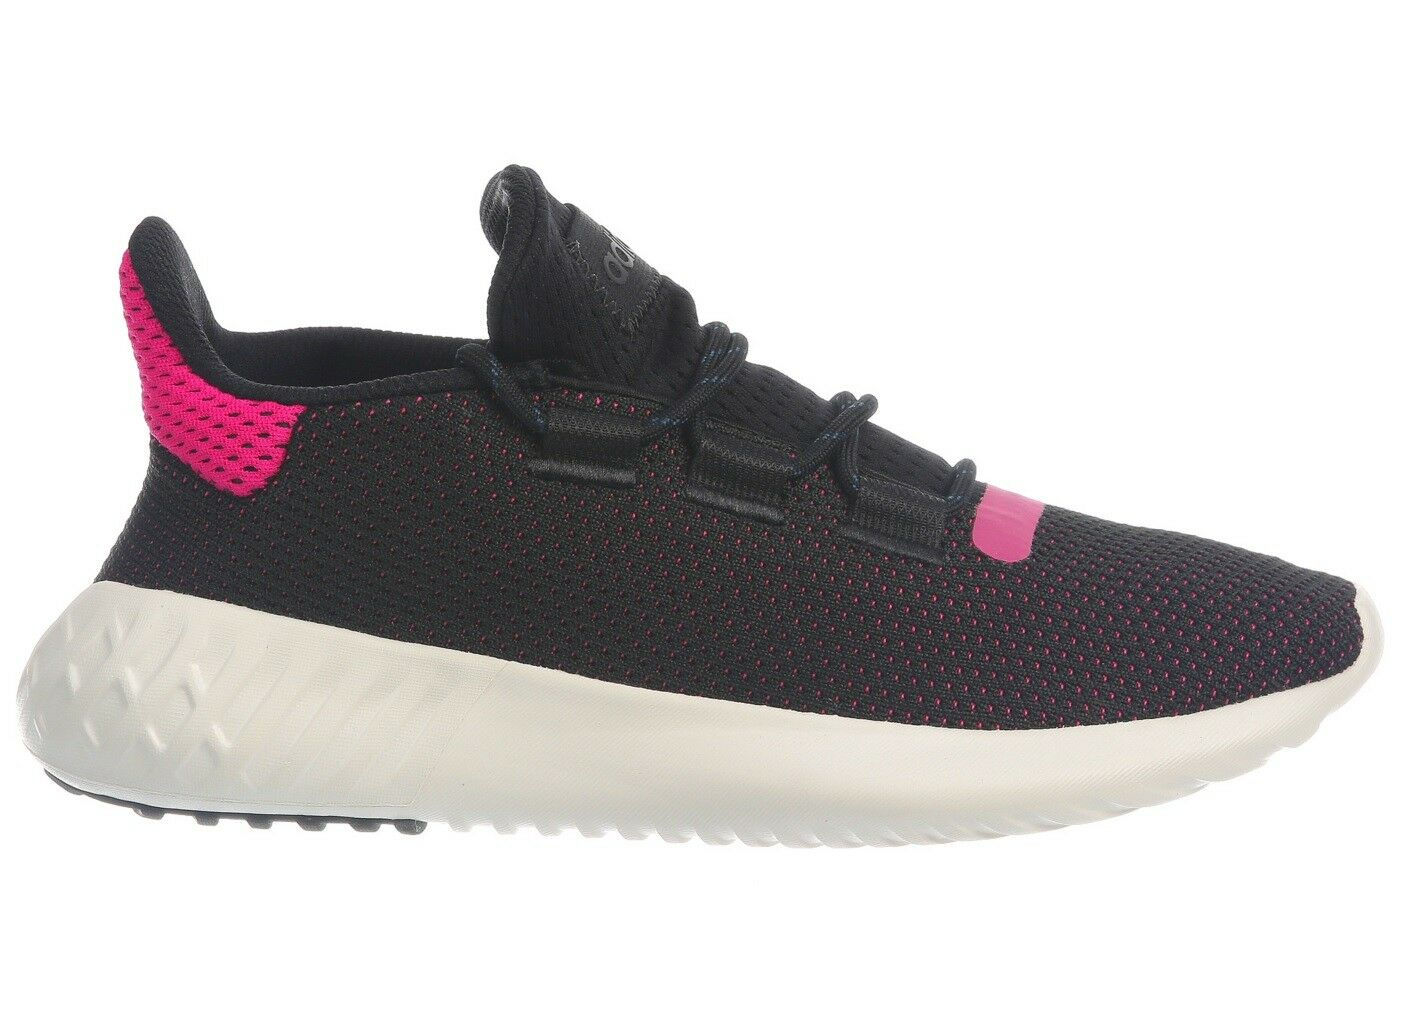 Adidas Tubular Dusk Primeknit Womens AQ1198 Black Pink Athletic shoes Size 8.5